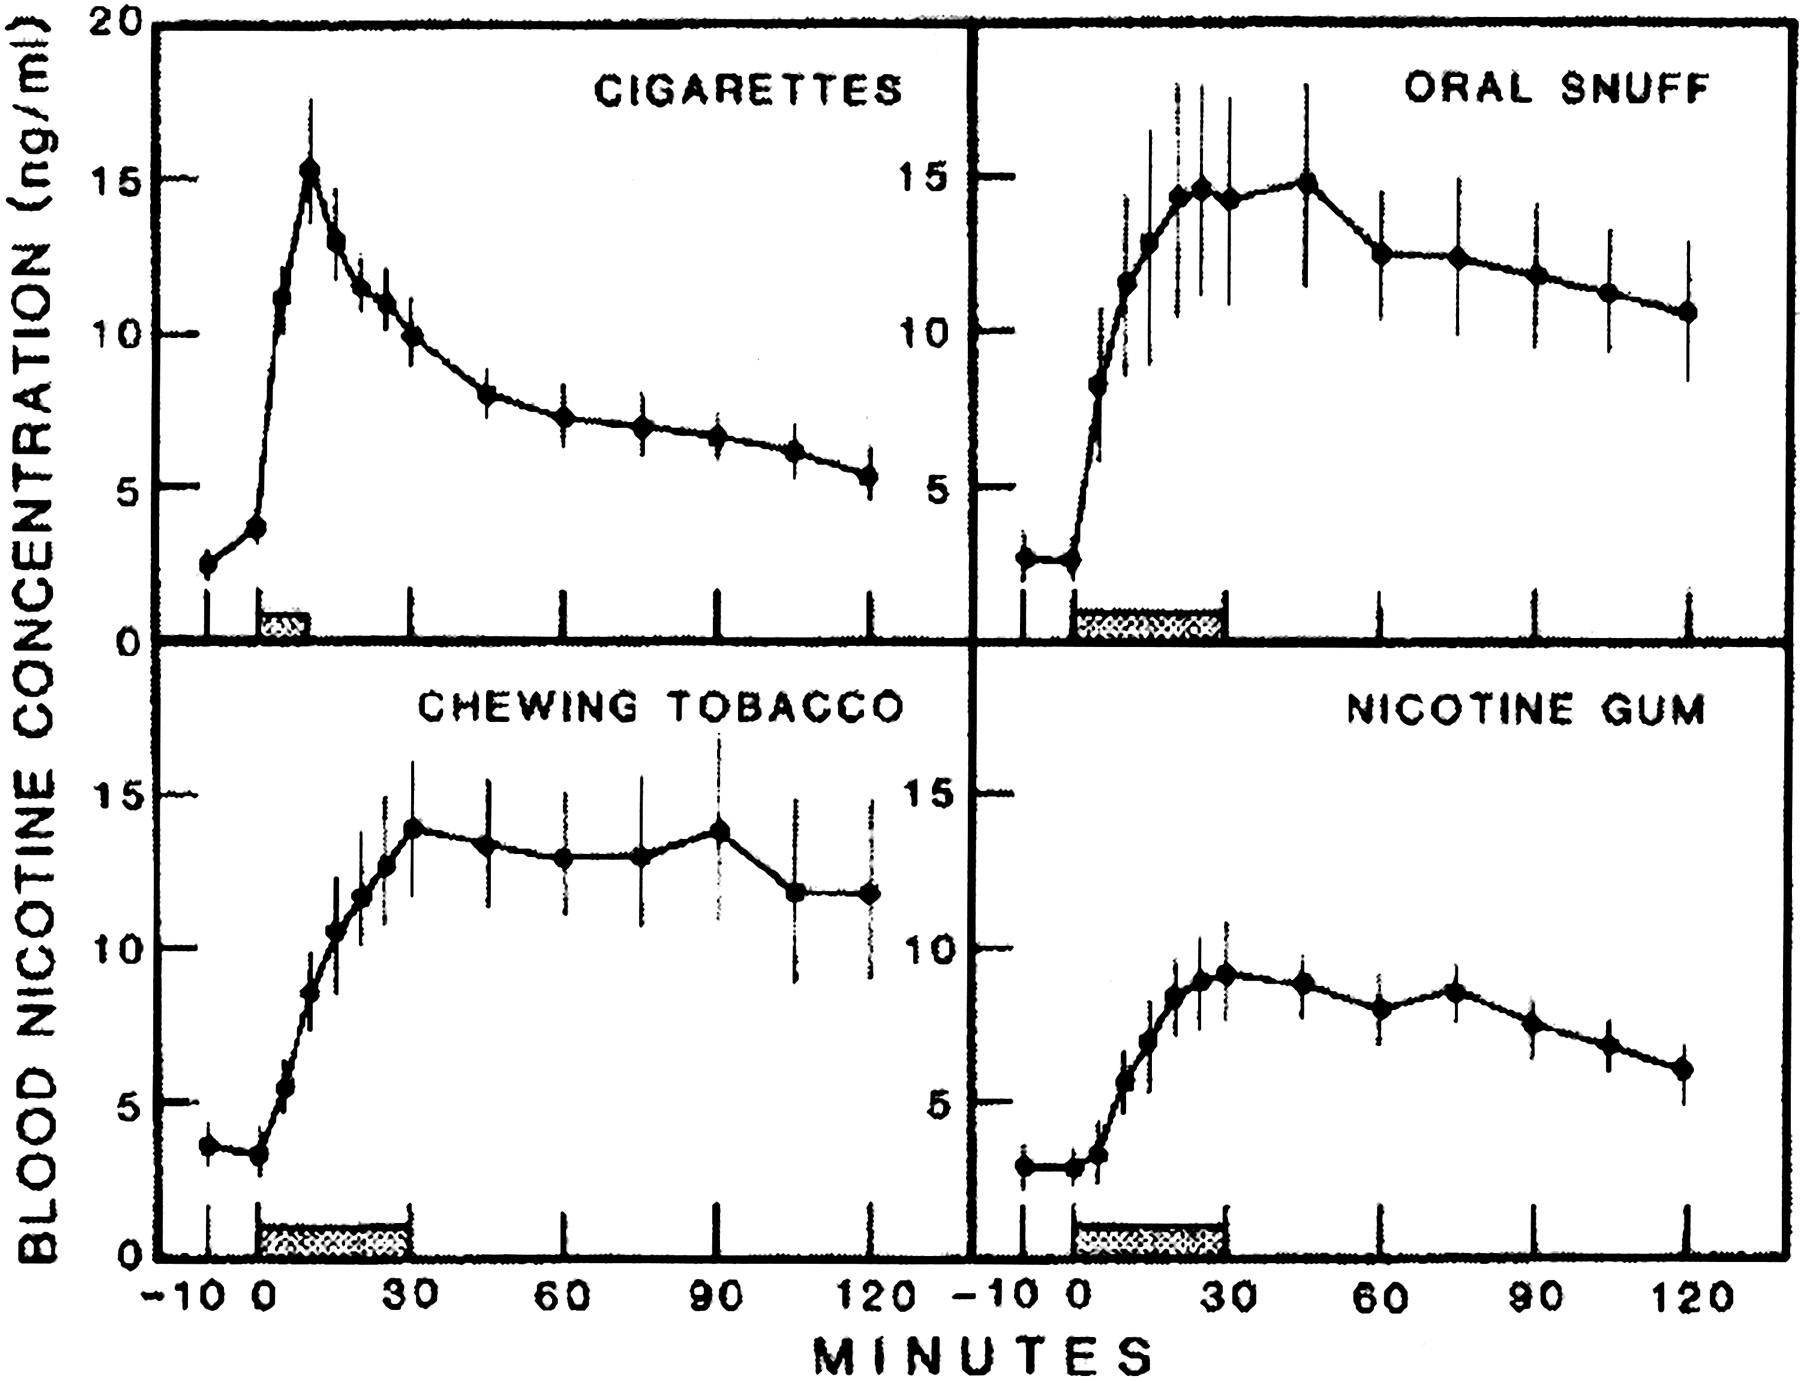 Metabolism and Disposition Kinetics of Nicotine | Pharmacological